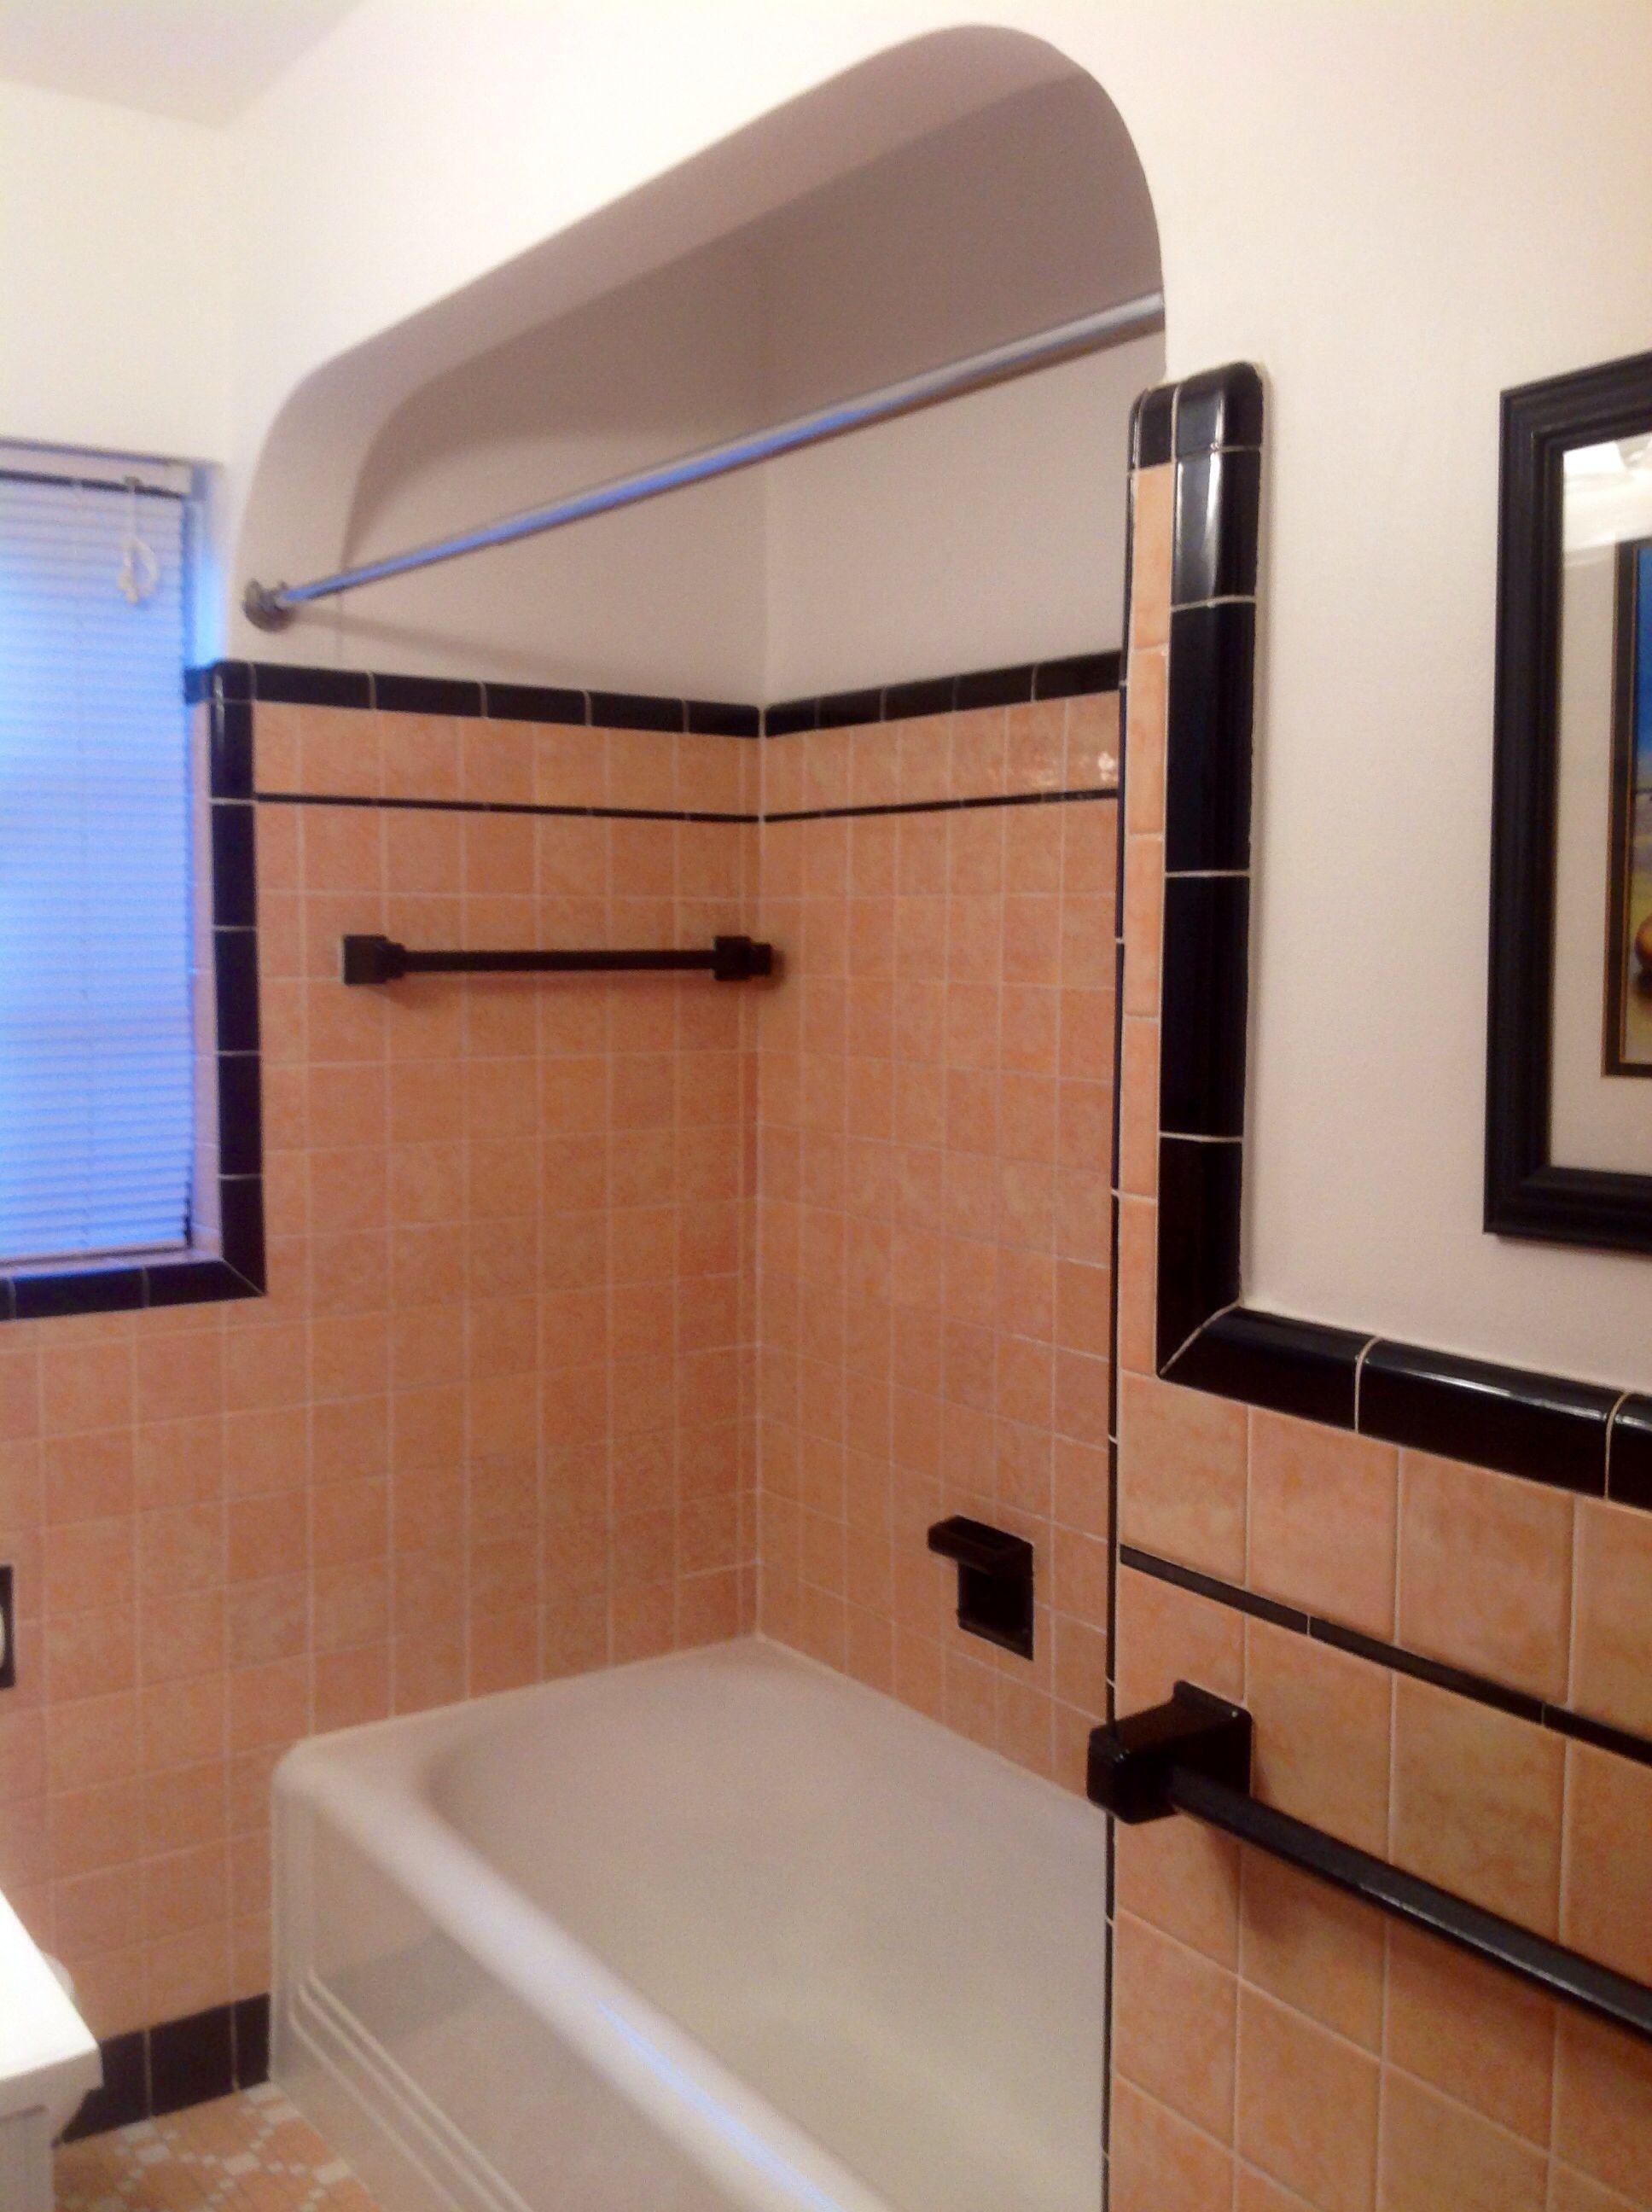 My Vintage 1937 Peach And Black Bathroom In My Home In